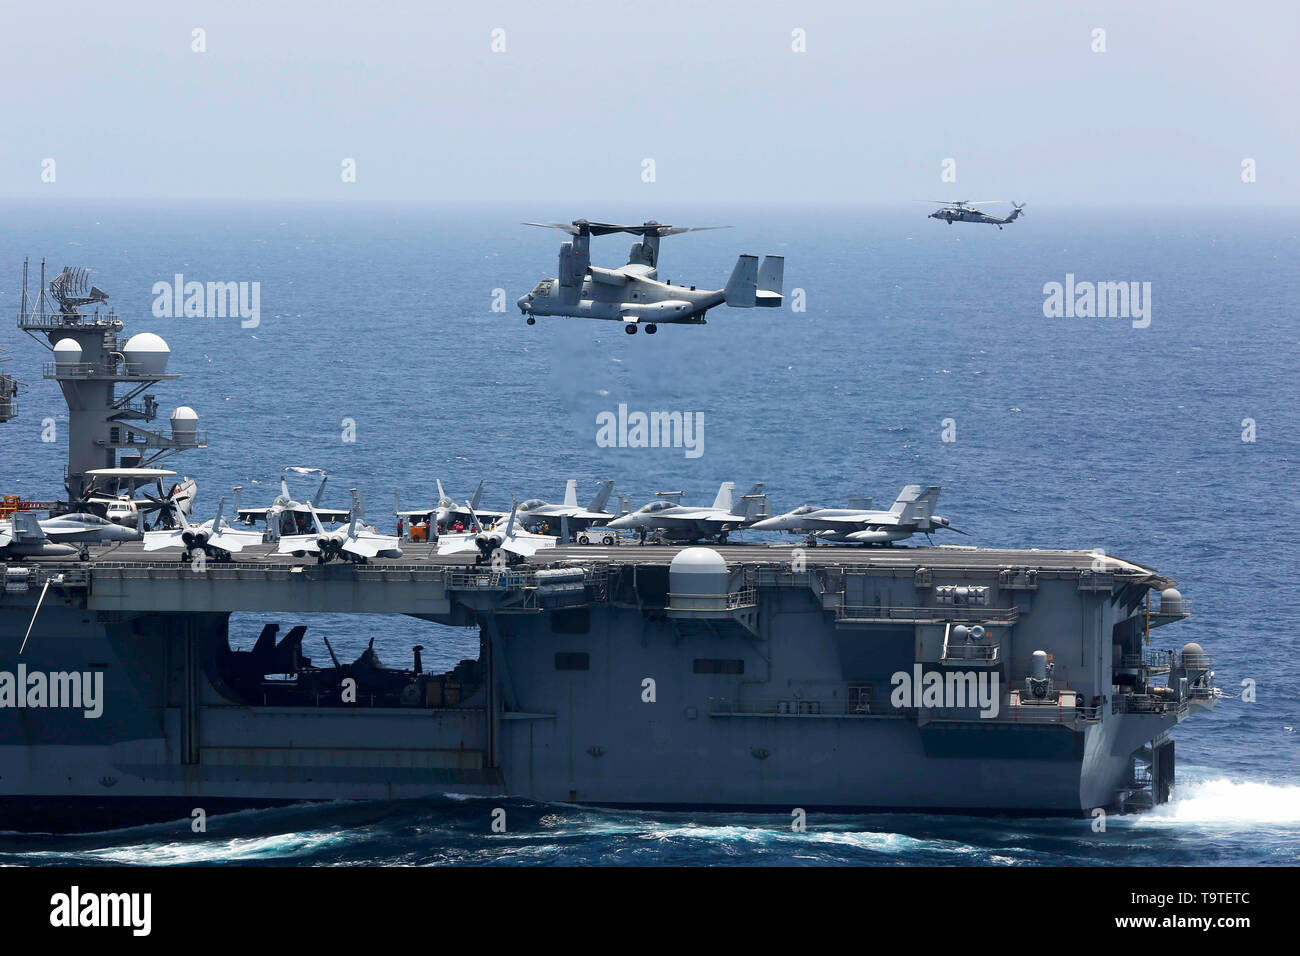 A U.S. Marine Corps MV-22 Osprey aircraft approaches the flight deck of the Nimitz-class aircraft carrier USS Abraham Lincoln to land during operations May 17, 2019 in the Arabian Sea. The joint strike group is part of additional forces being sent to the Middle East to counter what the Trump administration calls clear indications of threats from Iran. - Stock Image